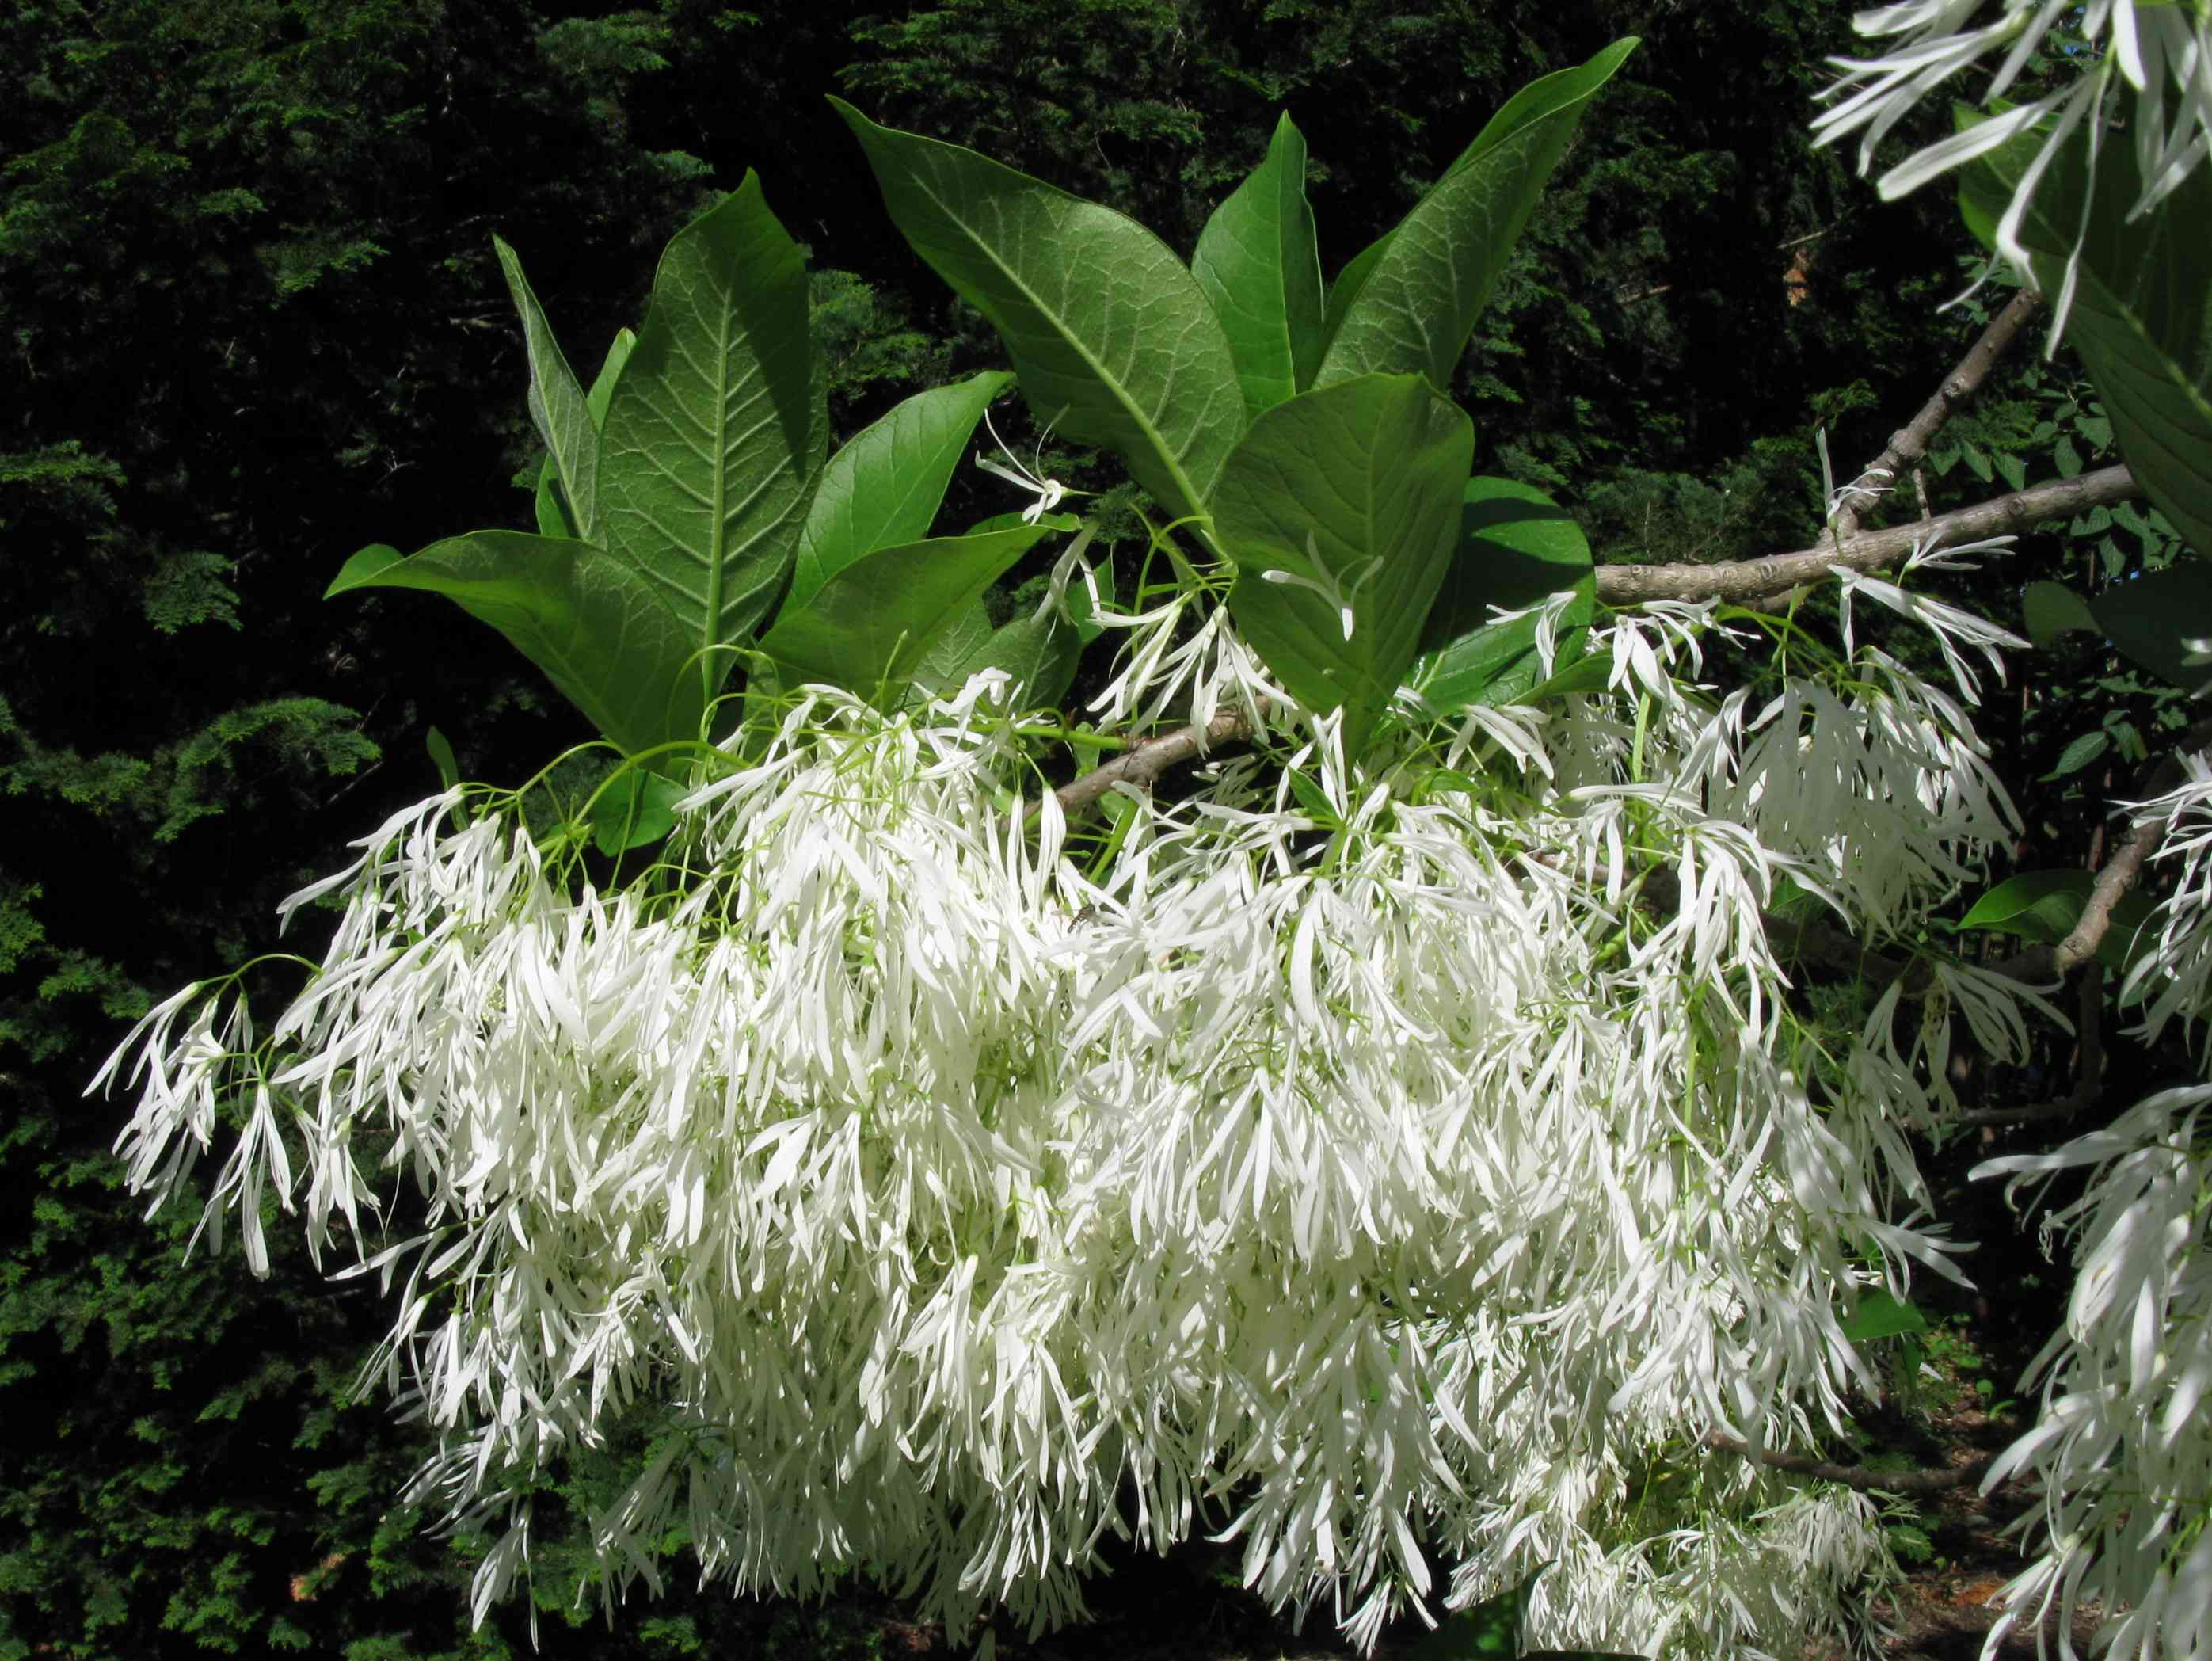 Green leaves and blossoms on a Chionanthus virginicus.